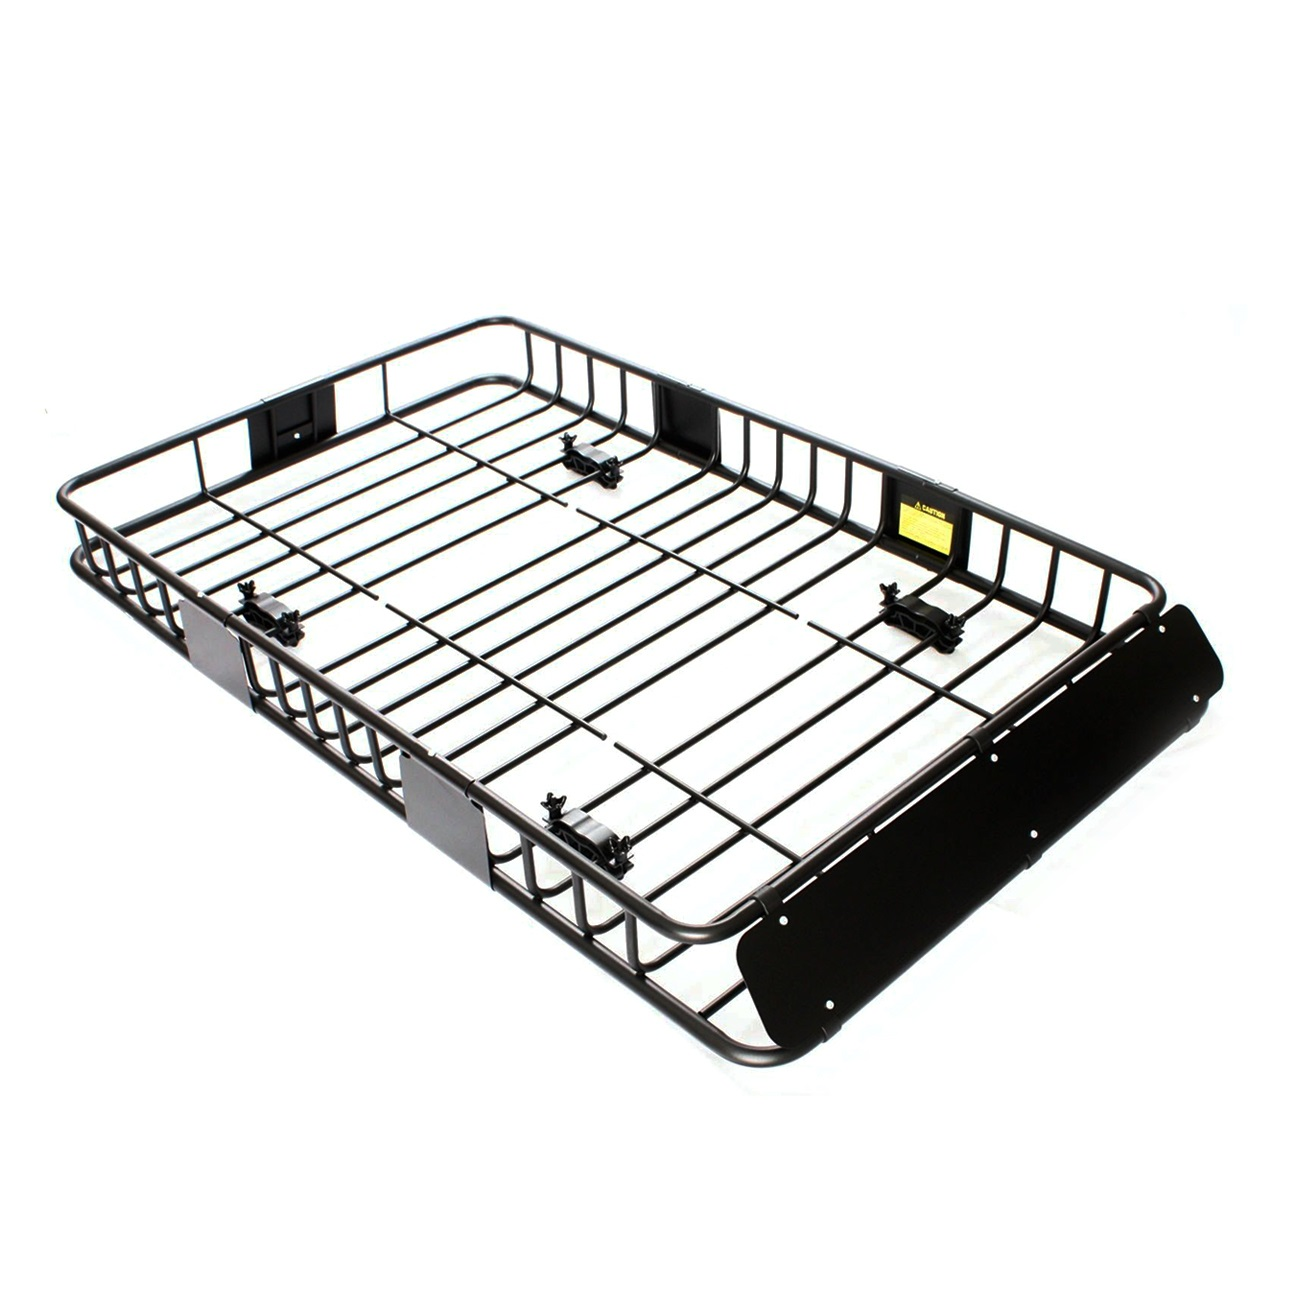 64 u0026quot  black universal roof rack w  extension cargo top luggage carrier basket